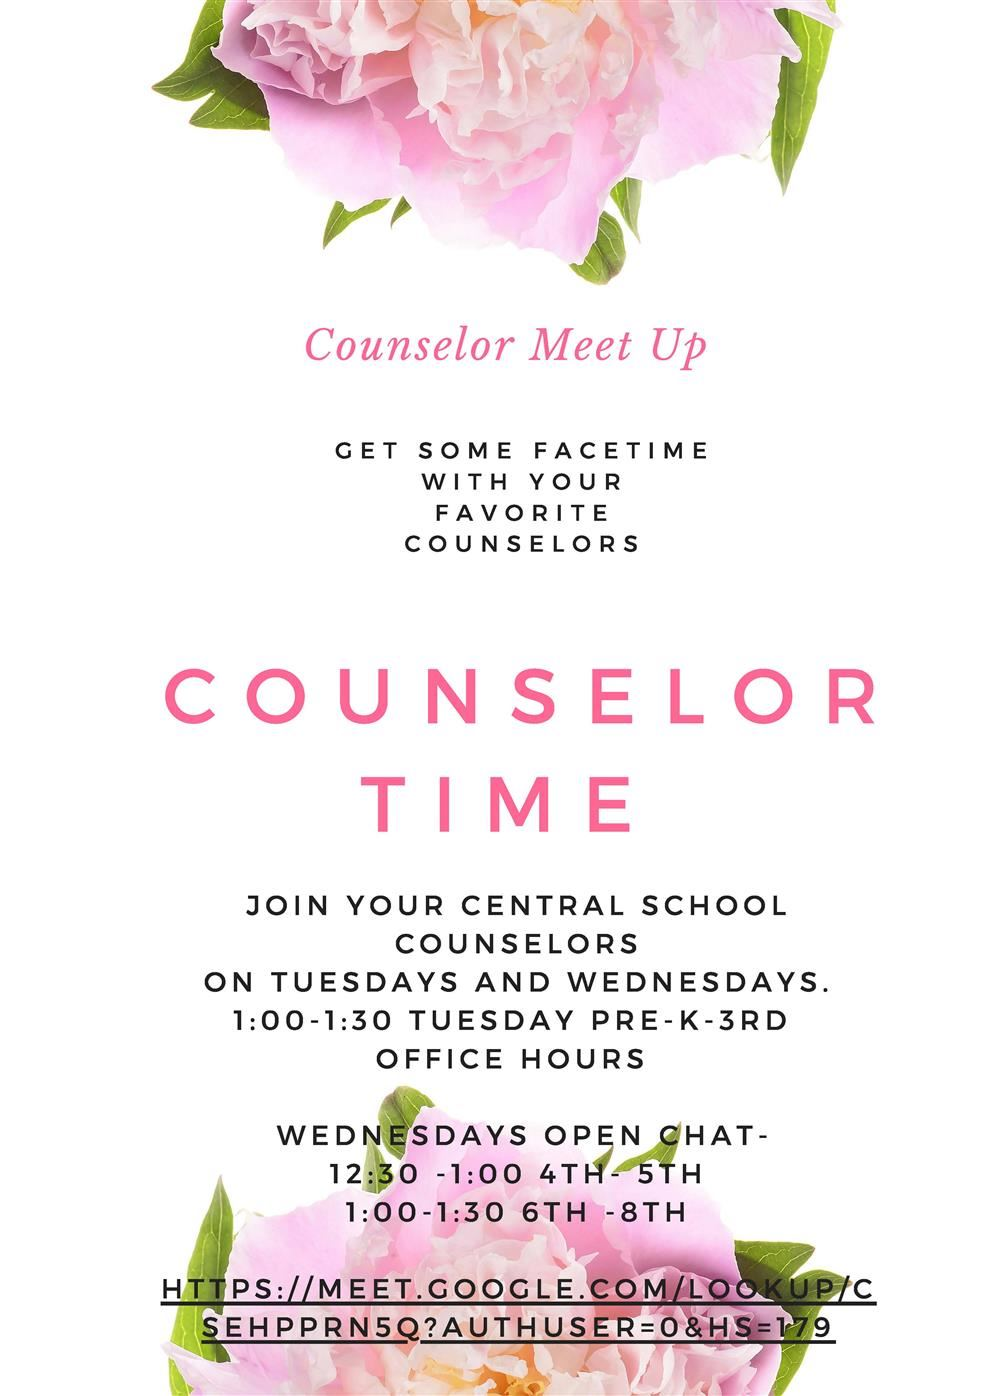 Central School Counselor Office Hours